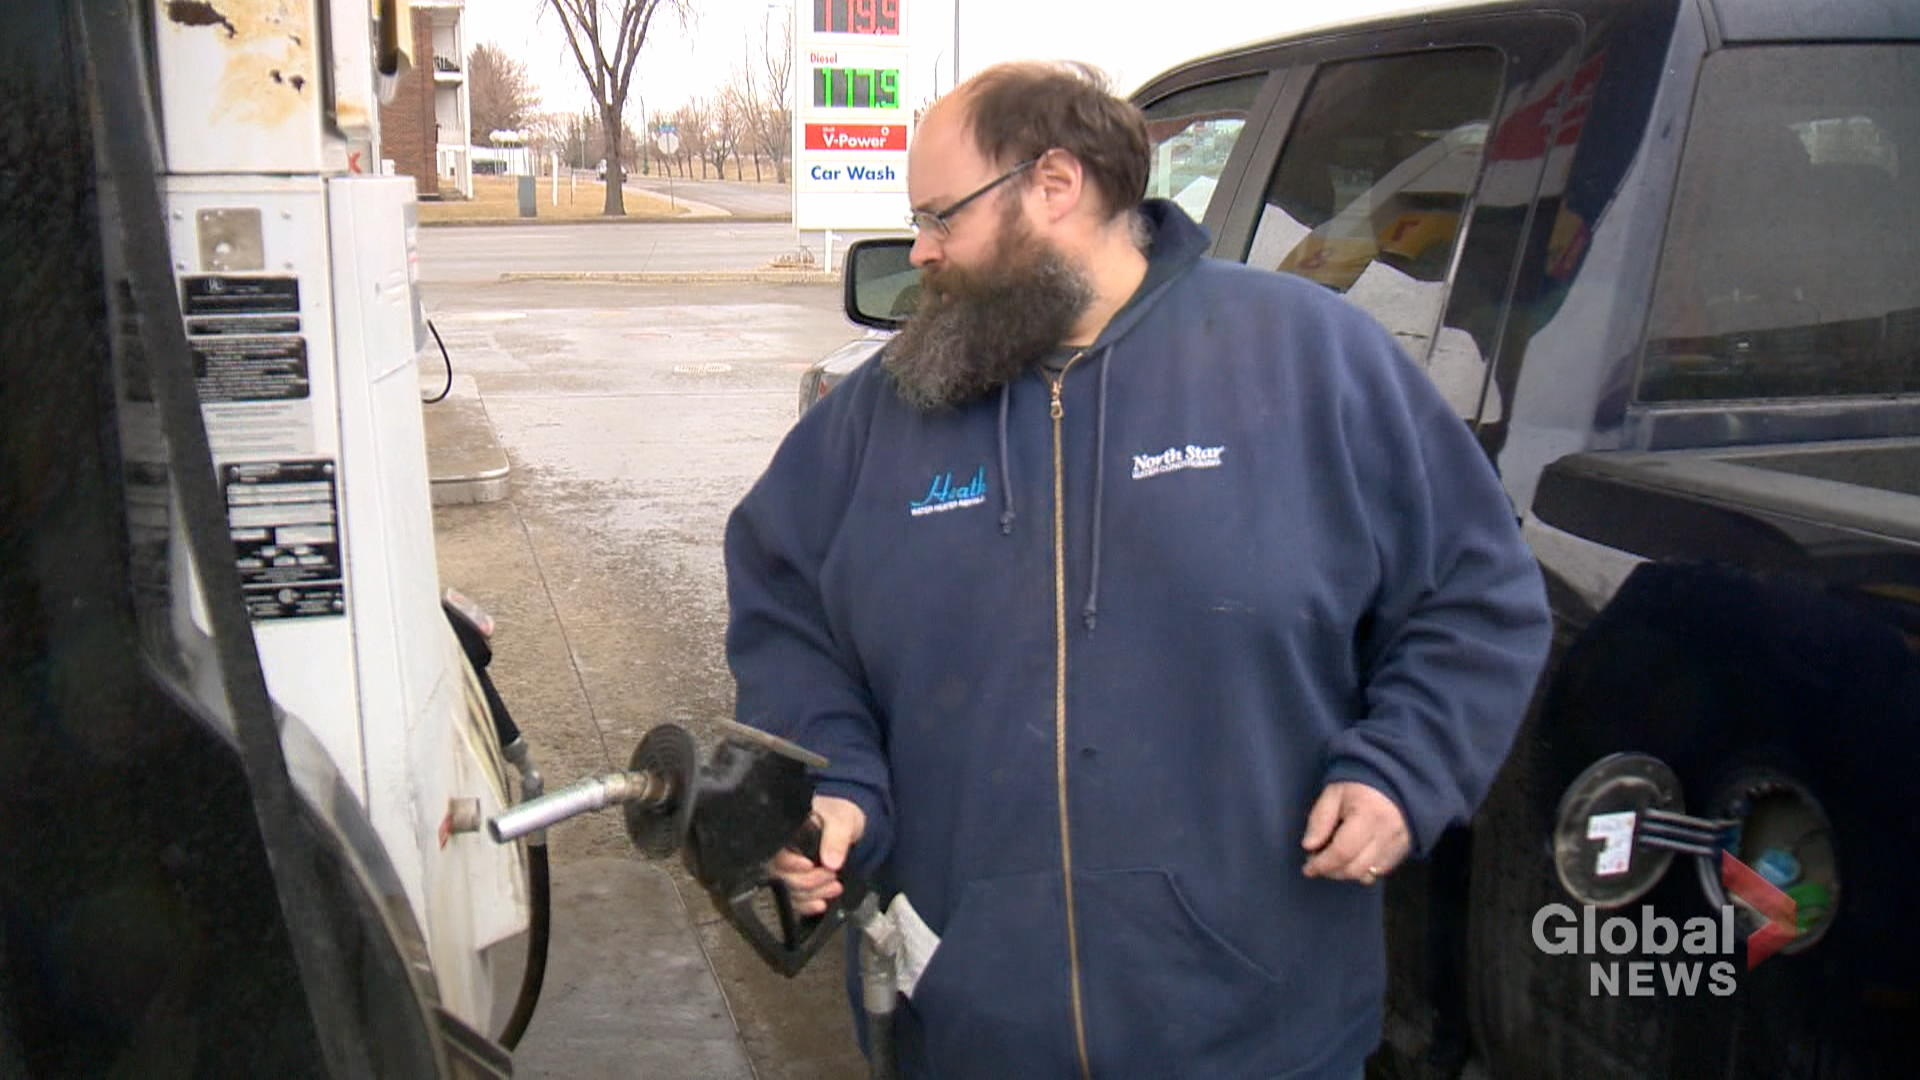 Carbon Tax Raises Gas Prices Up Over 4 Cents